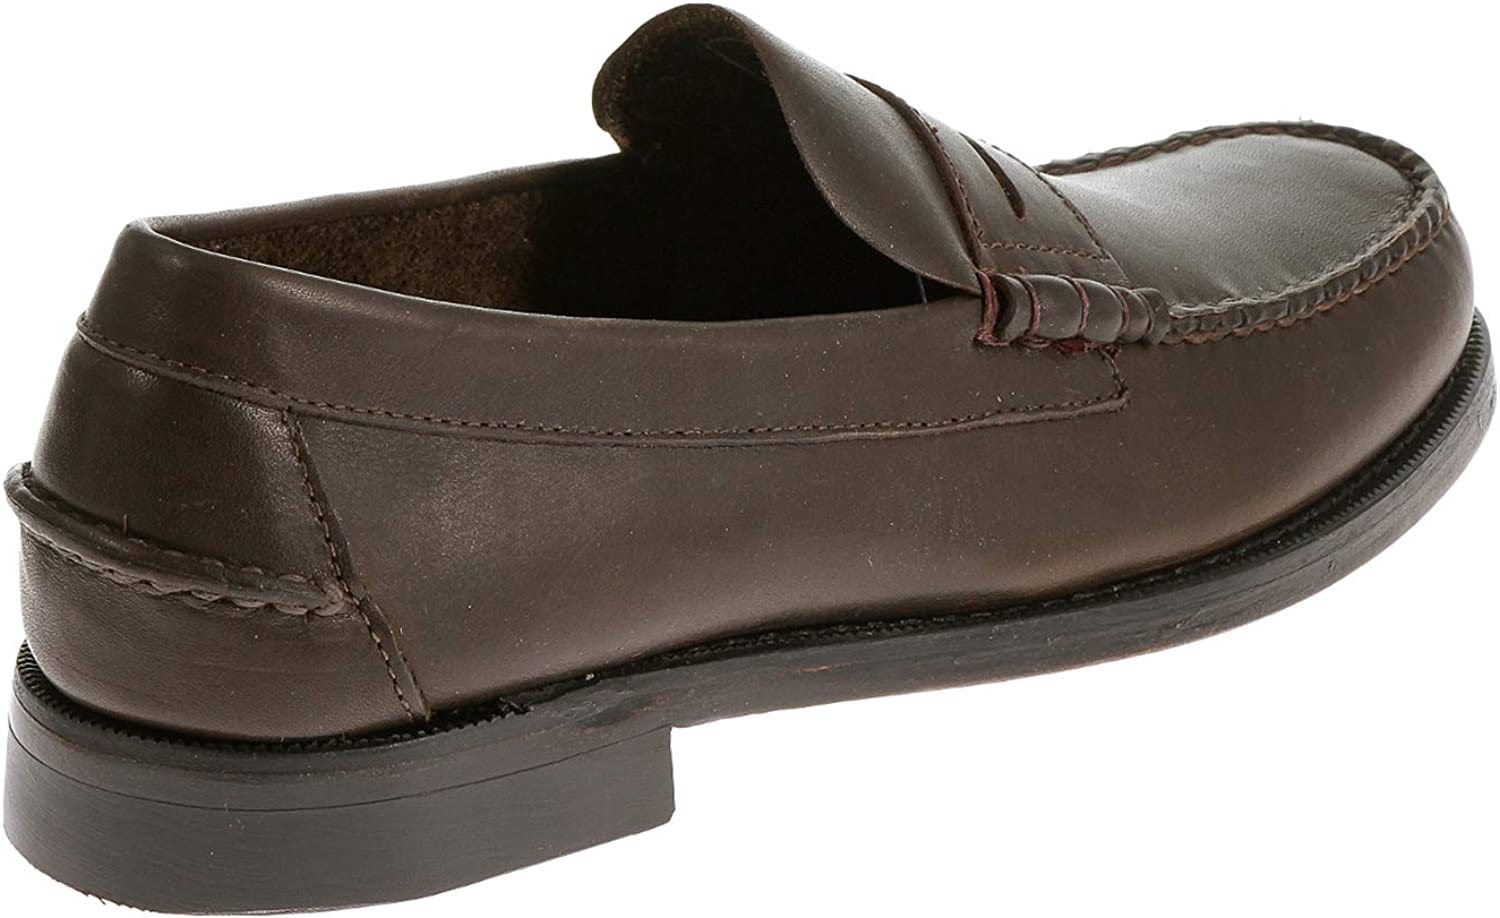 Sebago Mens Classic Leather Loafers